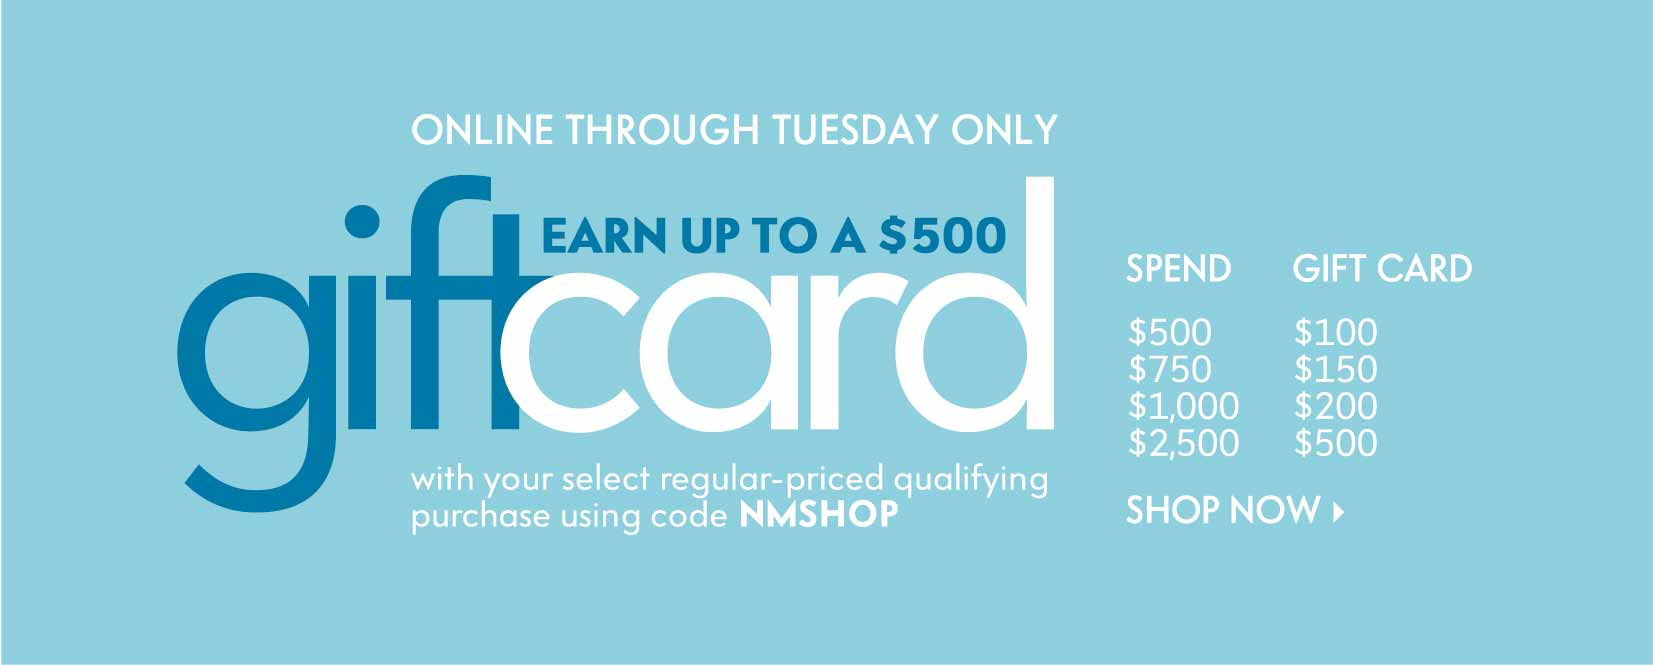 Earn Up to a $500 Gift Card